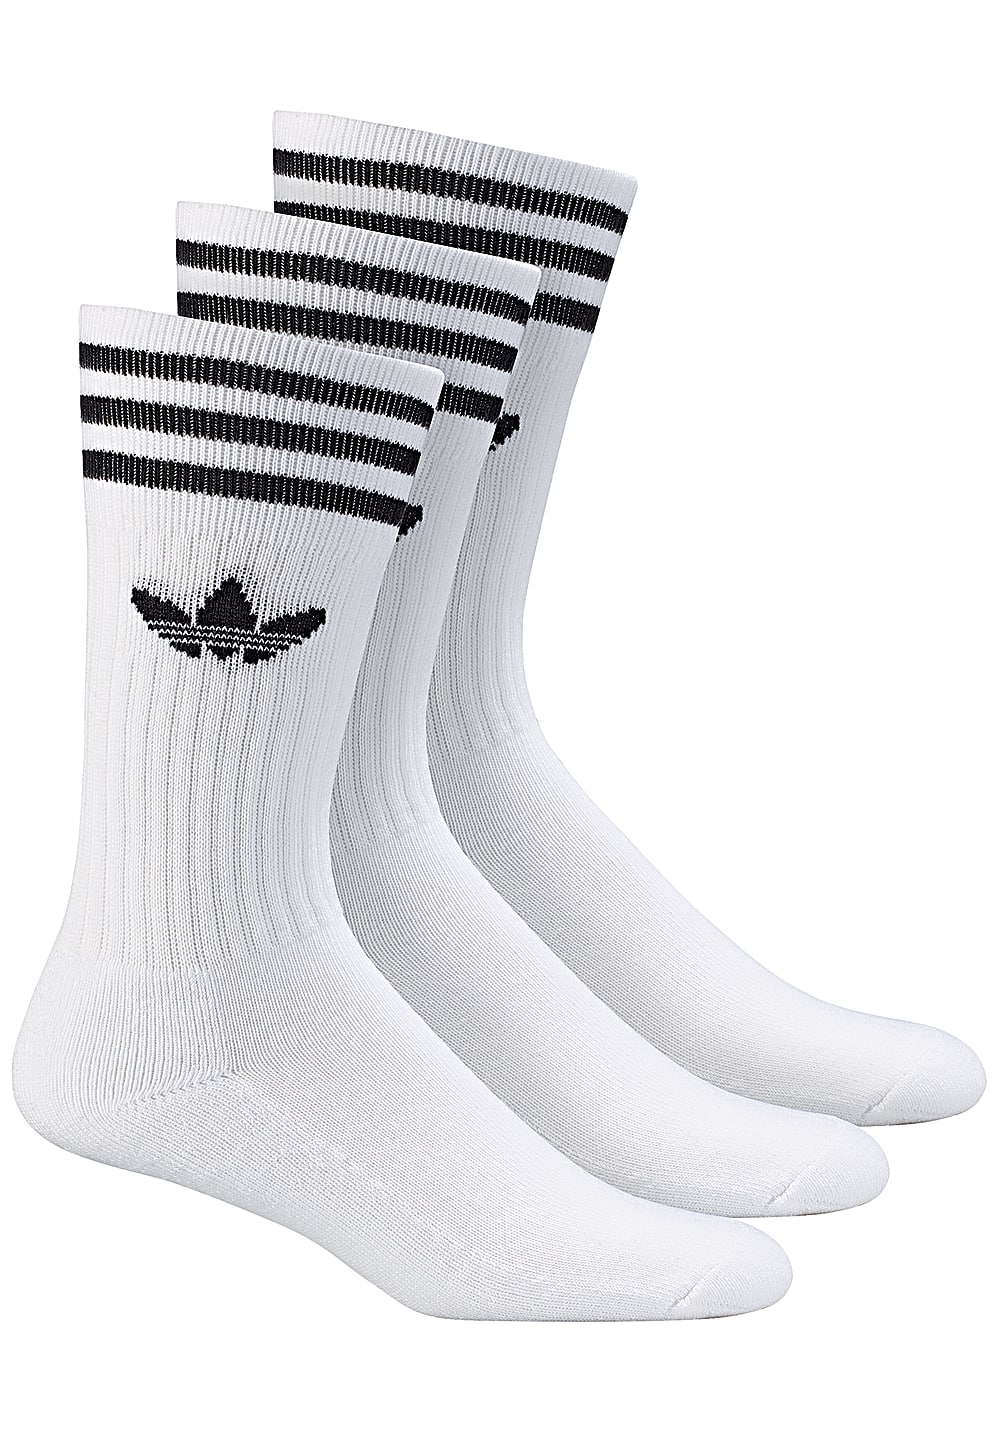 adidas solid crew socken wei planet sports. Black Bedroom Furniture Sets. Home Design Ideas